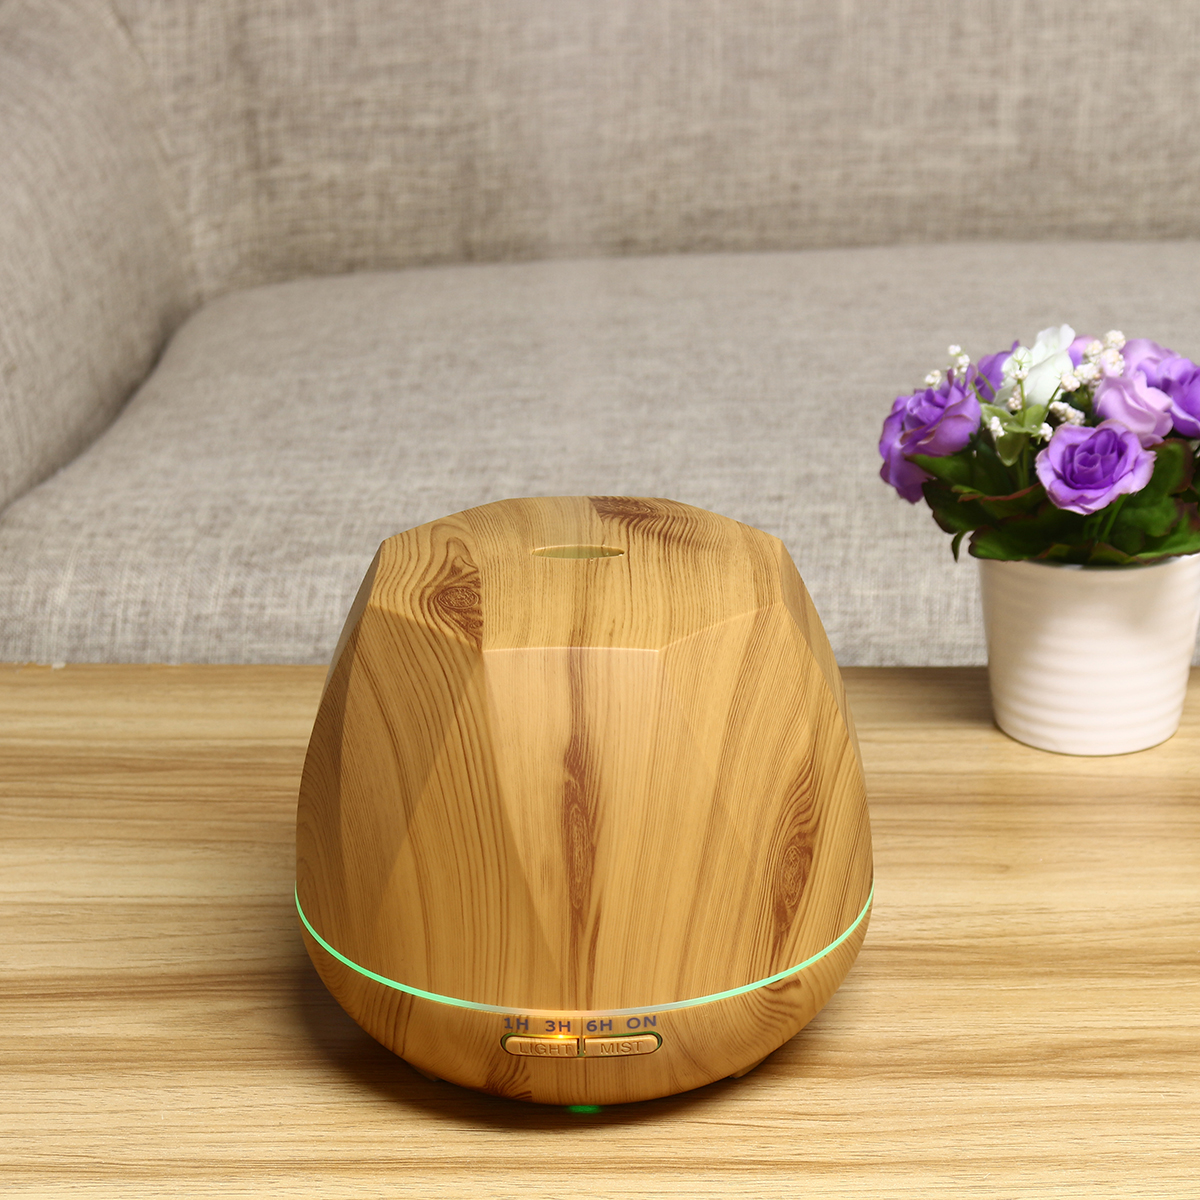 Wood Grain Ultrasonic Air Humidifier Aroma Remove Control